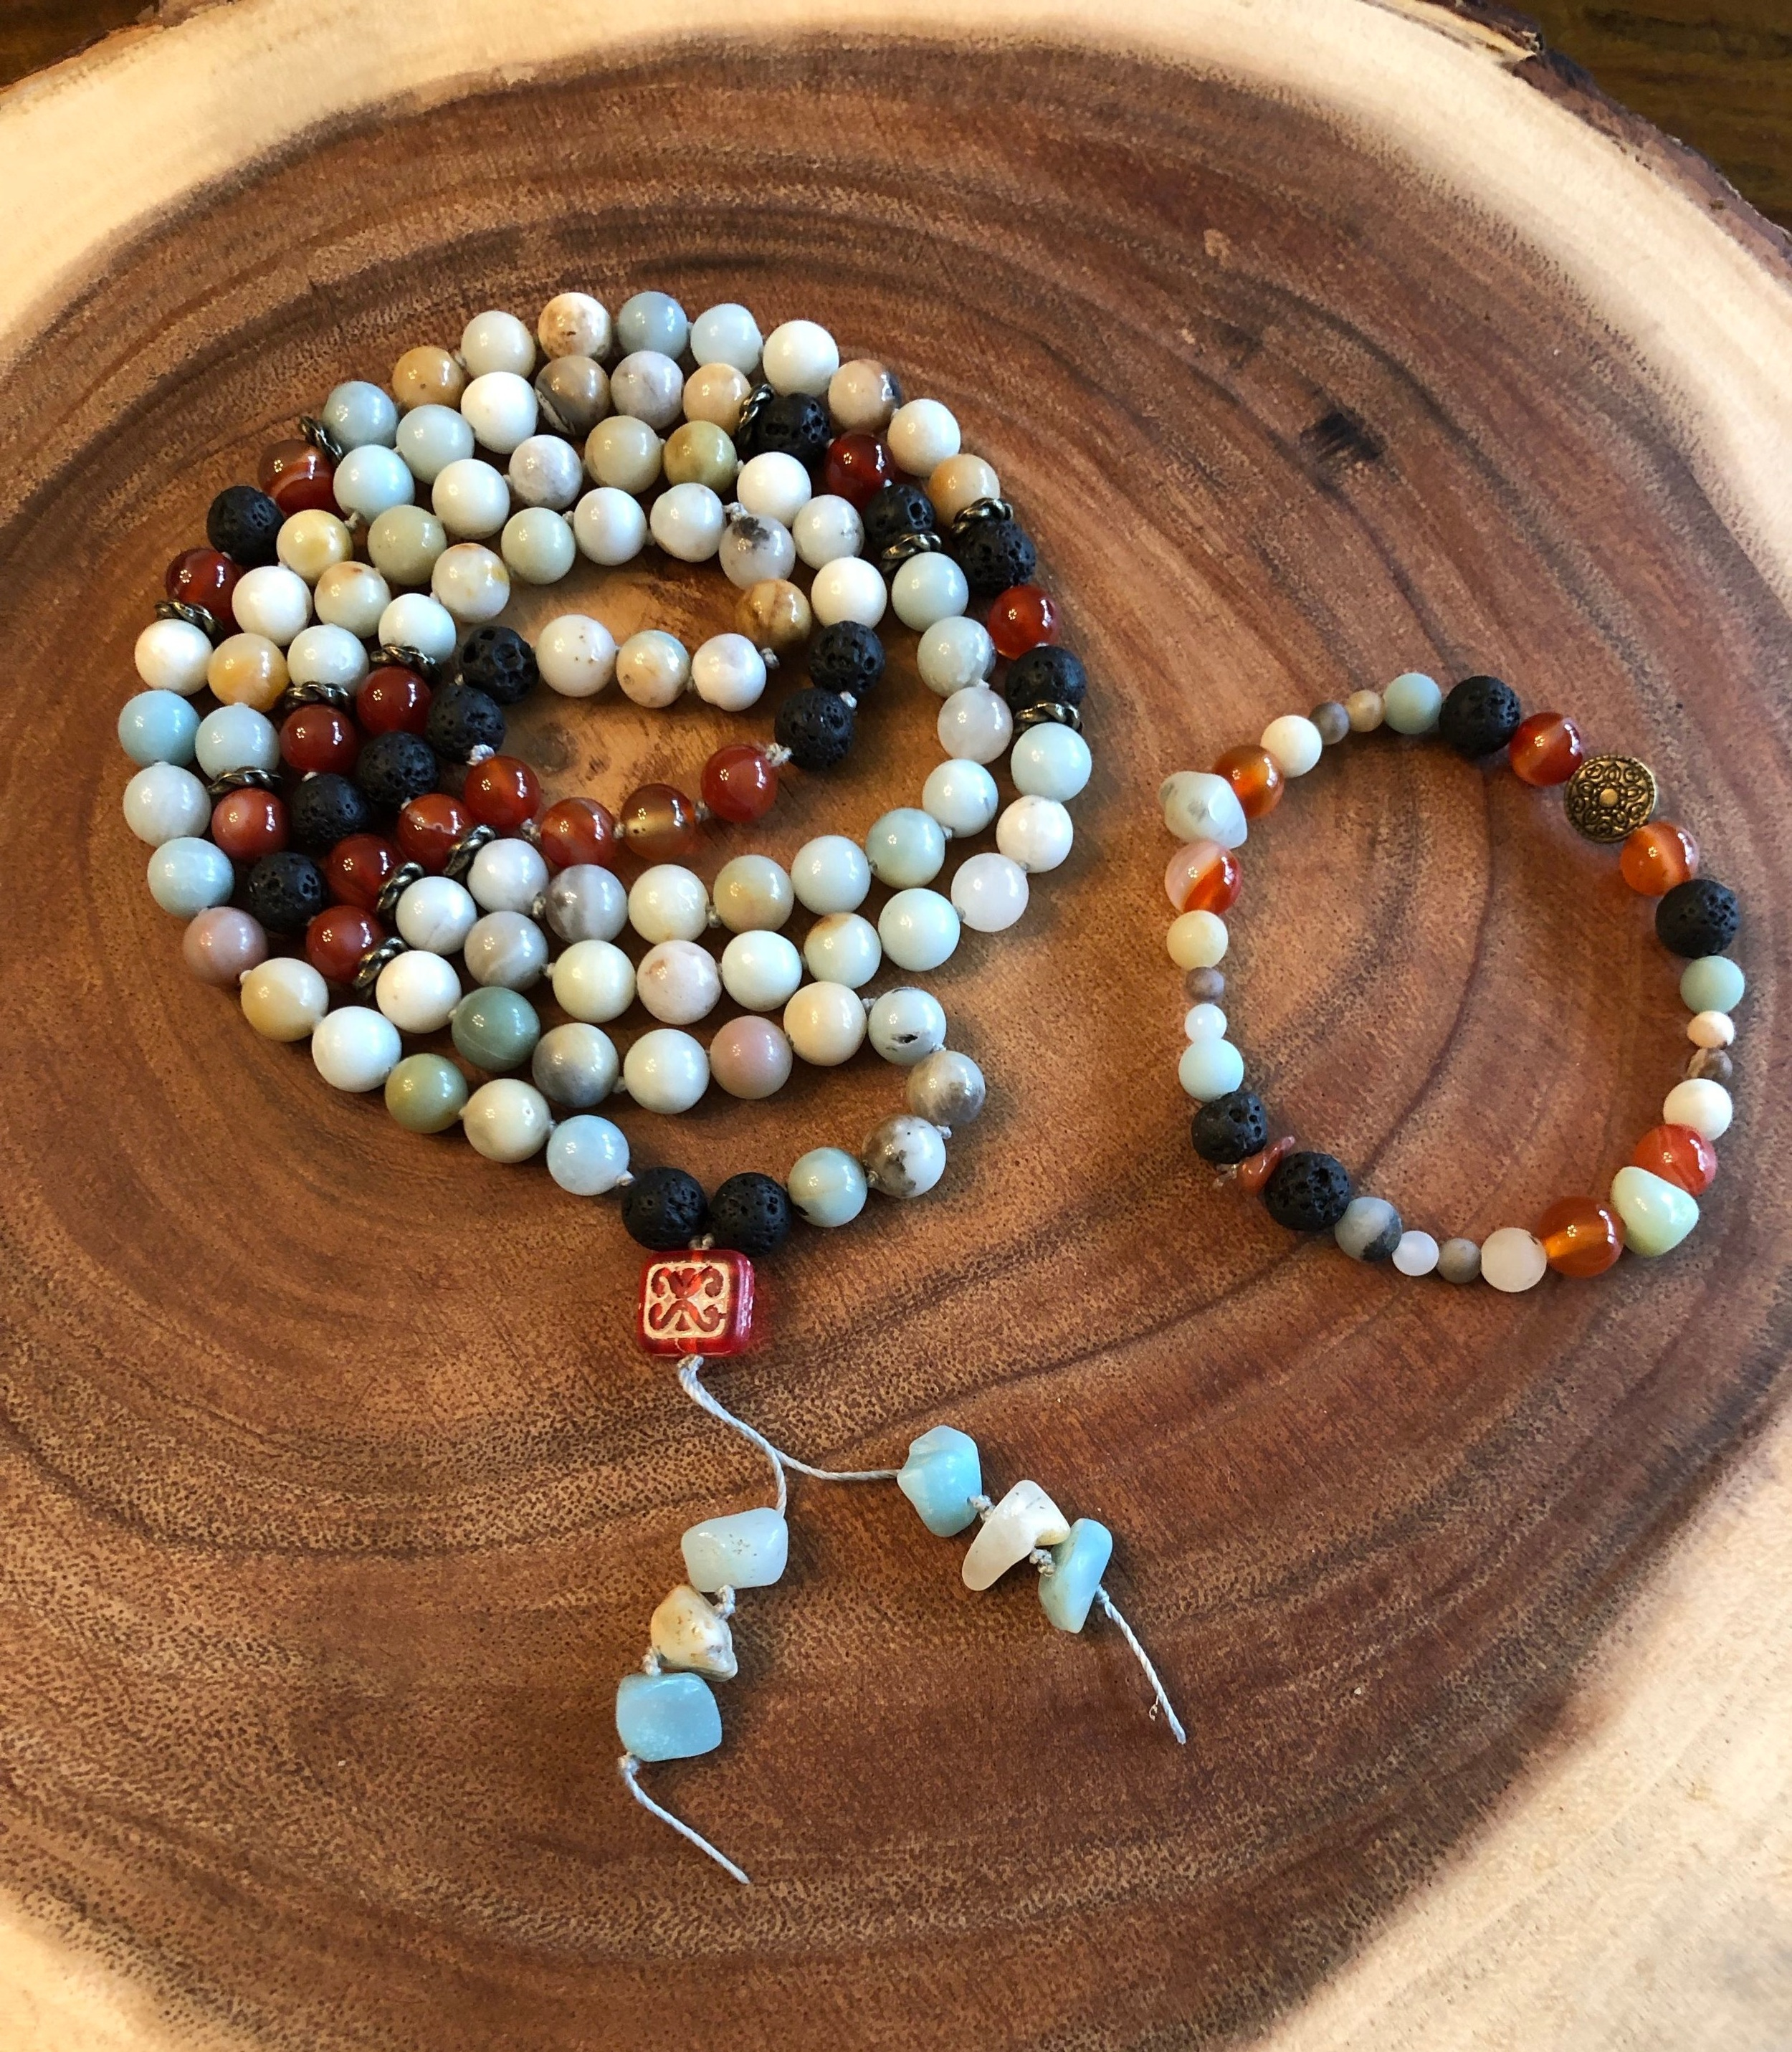 ♡ Amazonite - courage & truth ♡  ♡ Lava - strength ♡  ♡ Agate - harmony & balance ♡